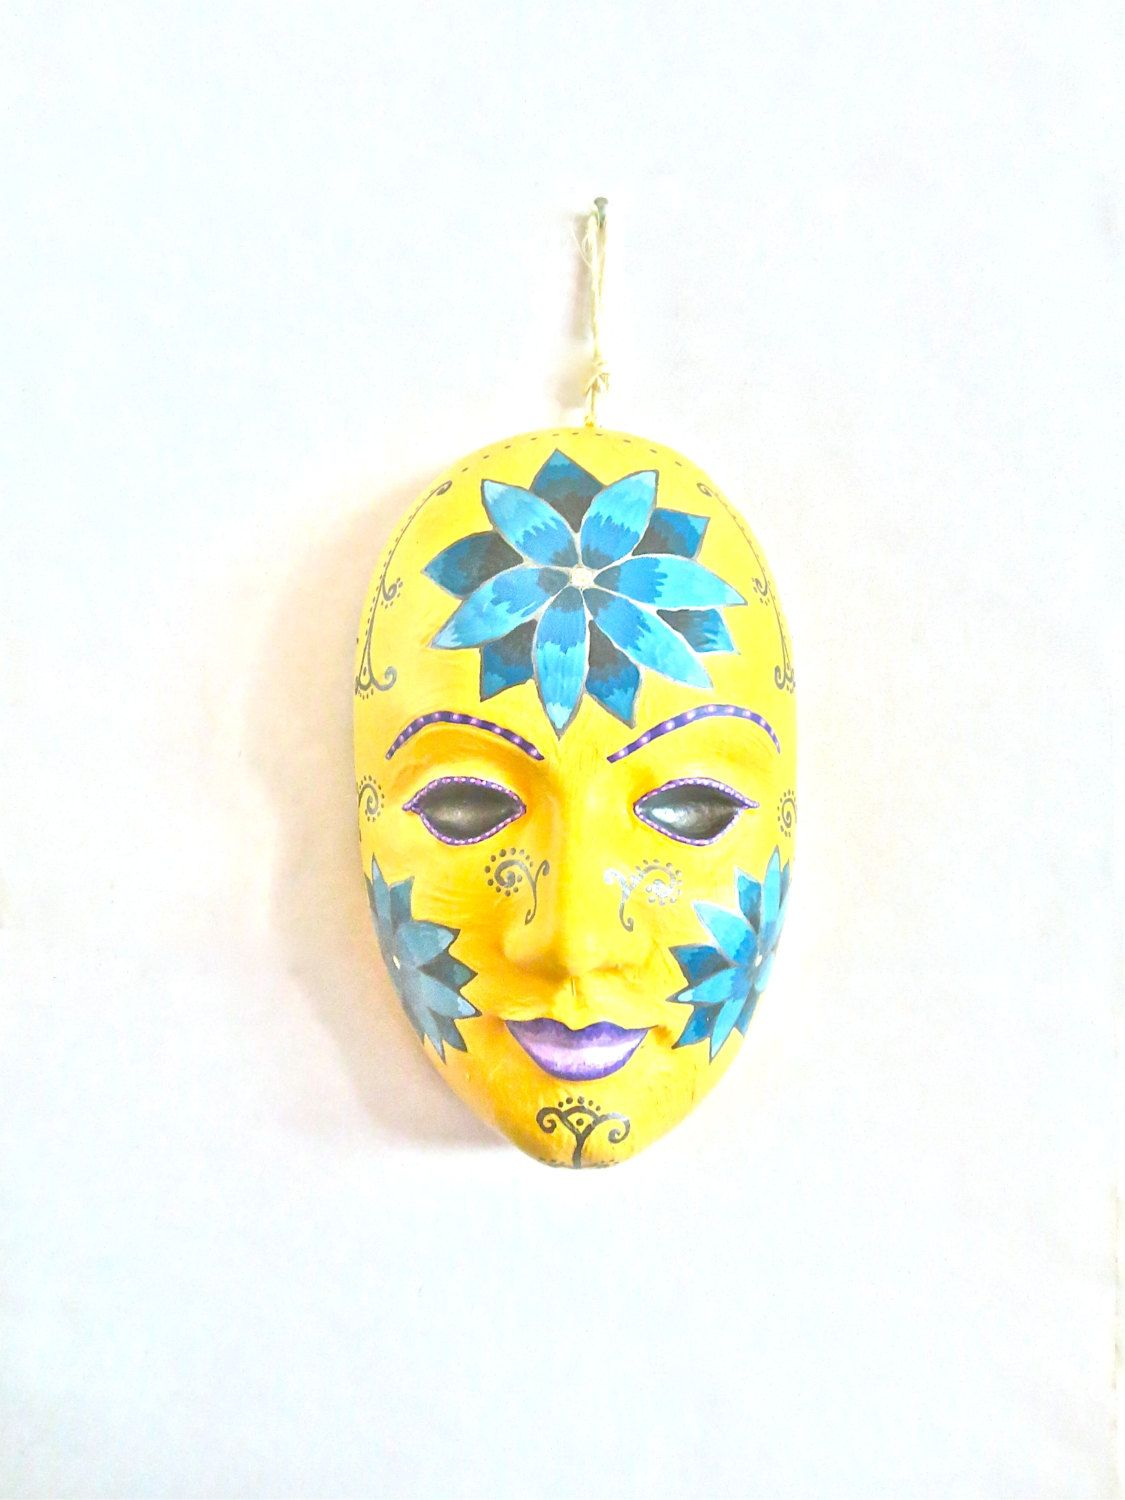 Venetian Mask, Ceramic Art, Floral Wall Art, Ceramic Wall Art ...